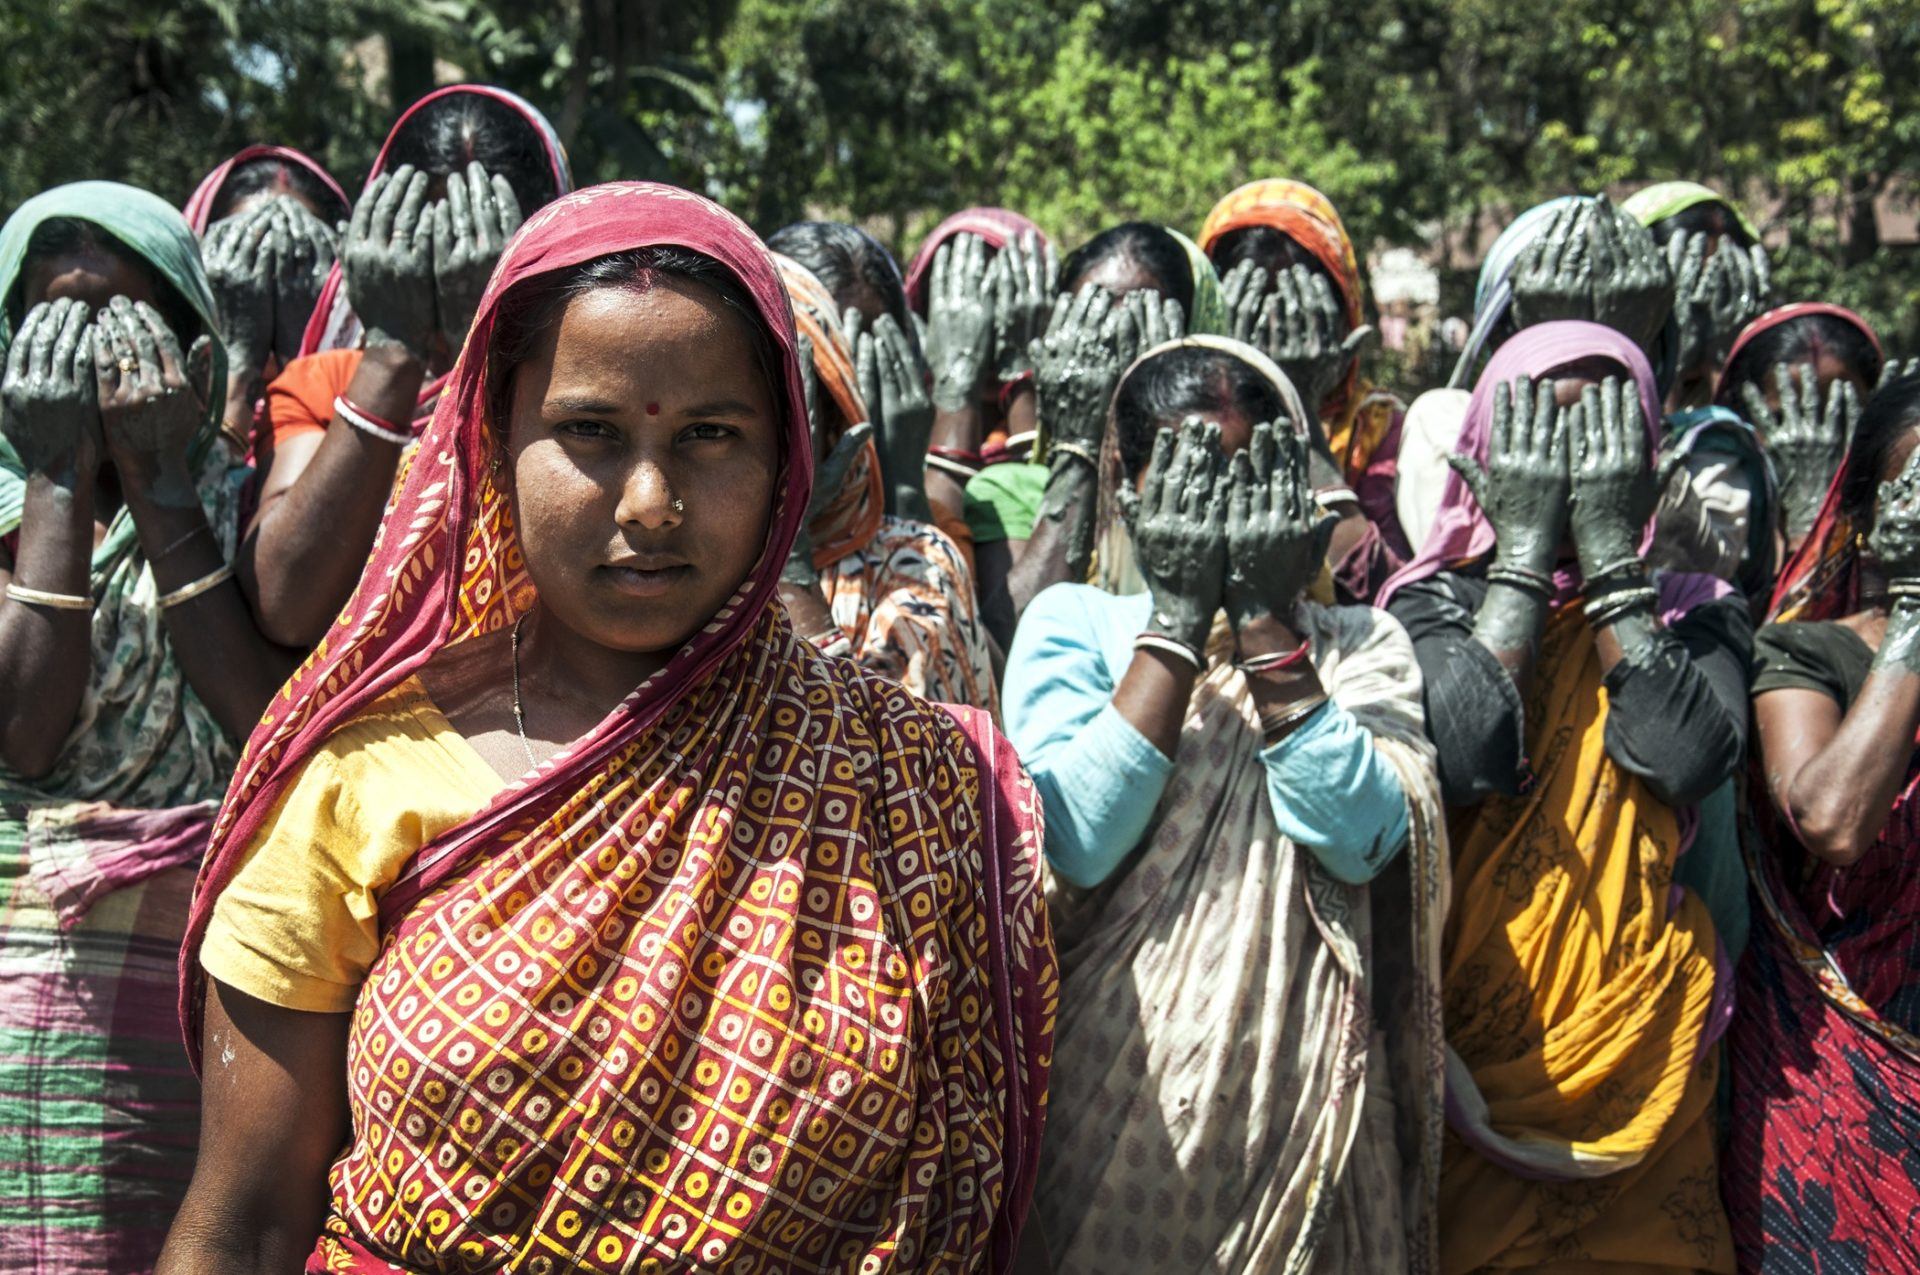 A woman stands at the forefront, staring directly into the camera. A group of women stand behind her cover their faces in protest.